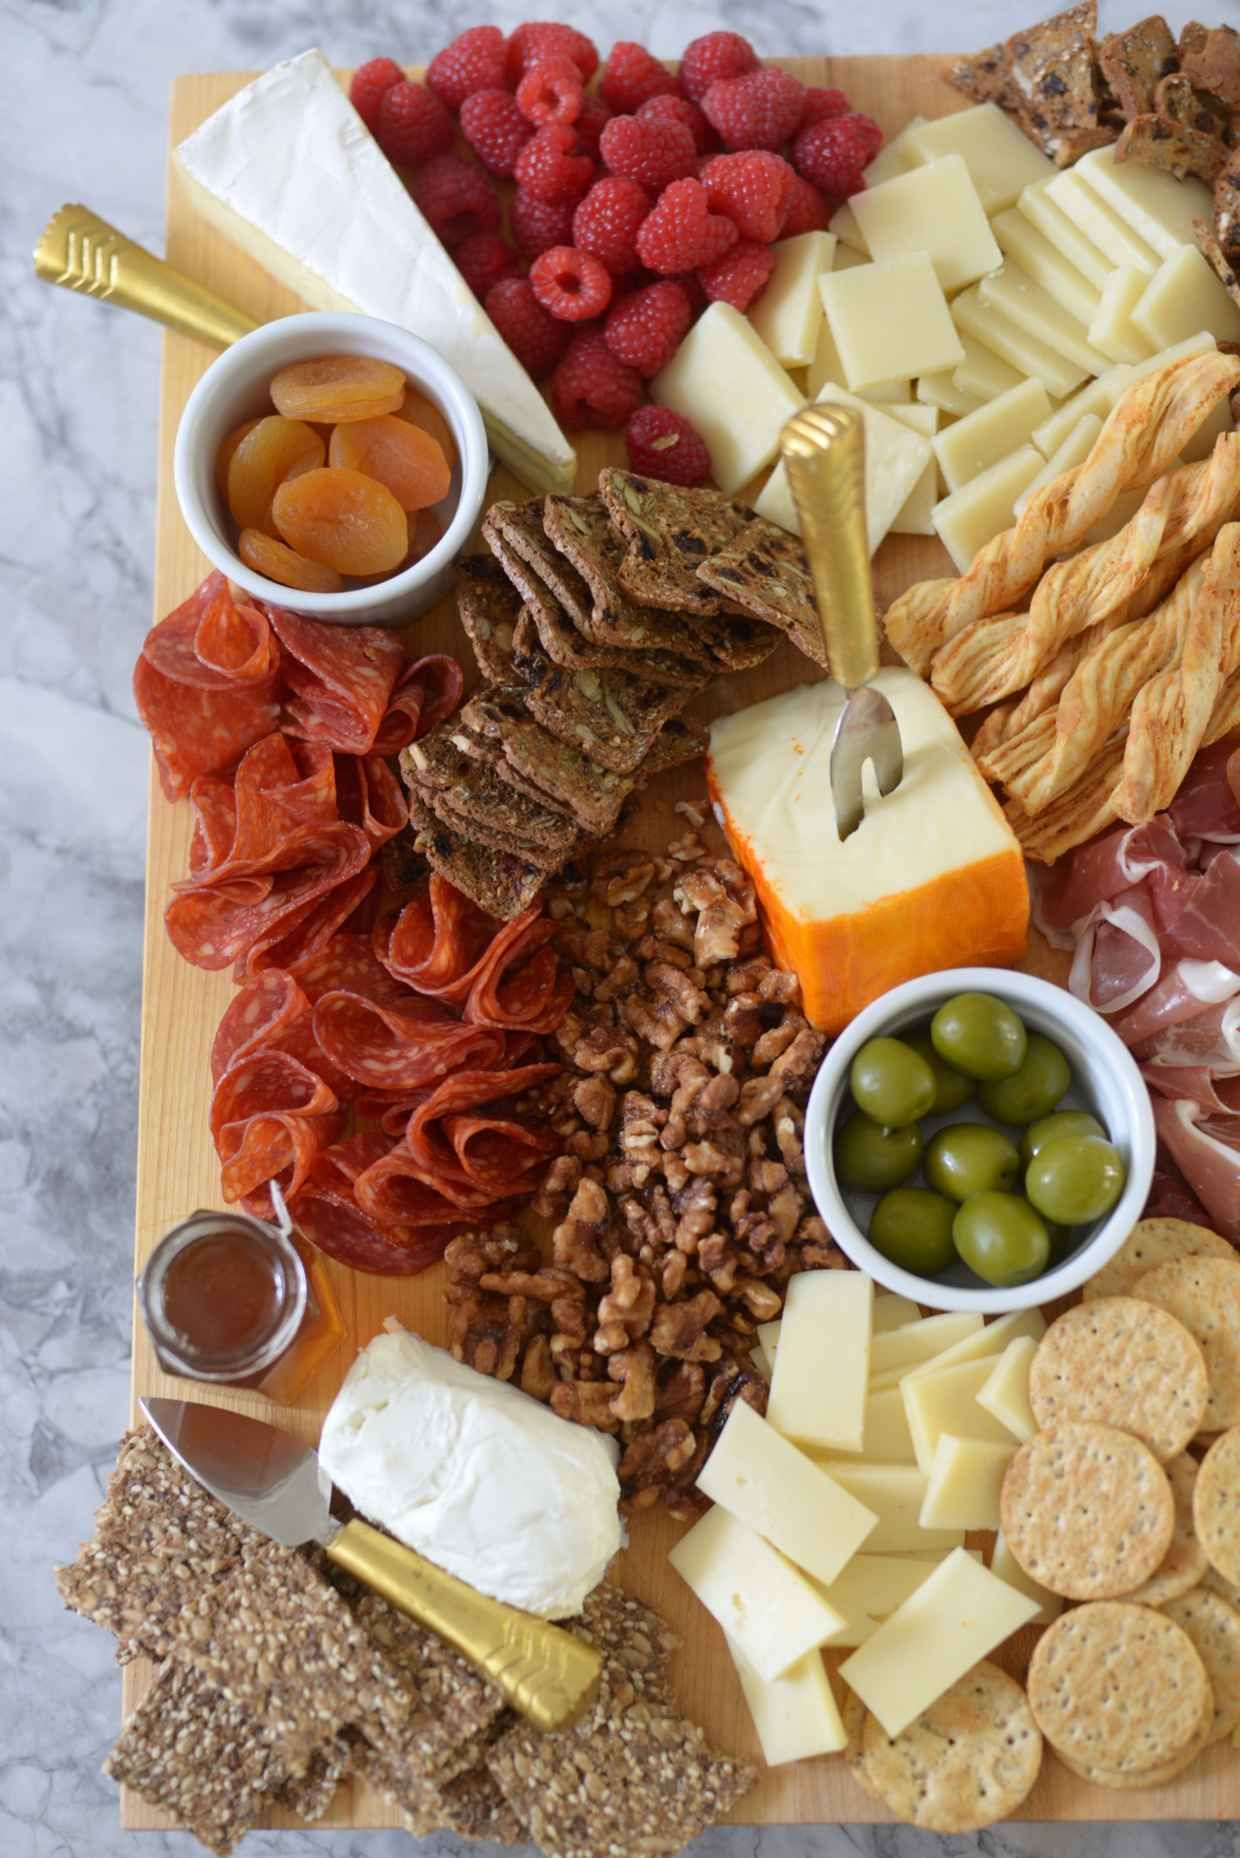 Get Inspired To Create A Stunning Appetizer Board Here Are 17 Of The Best Costco Party PlattersCostco